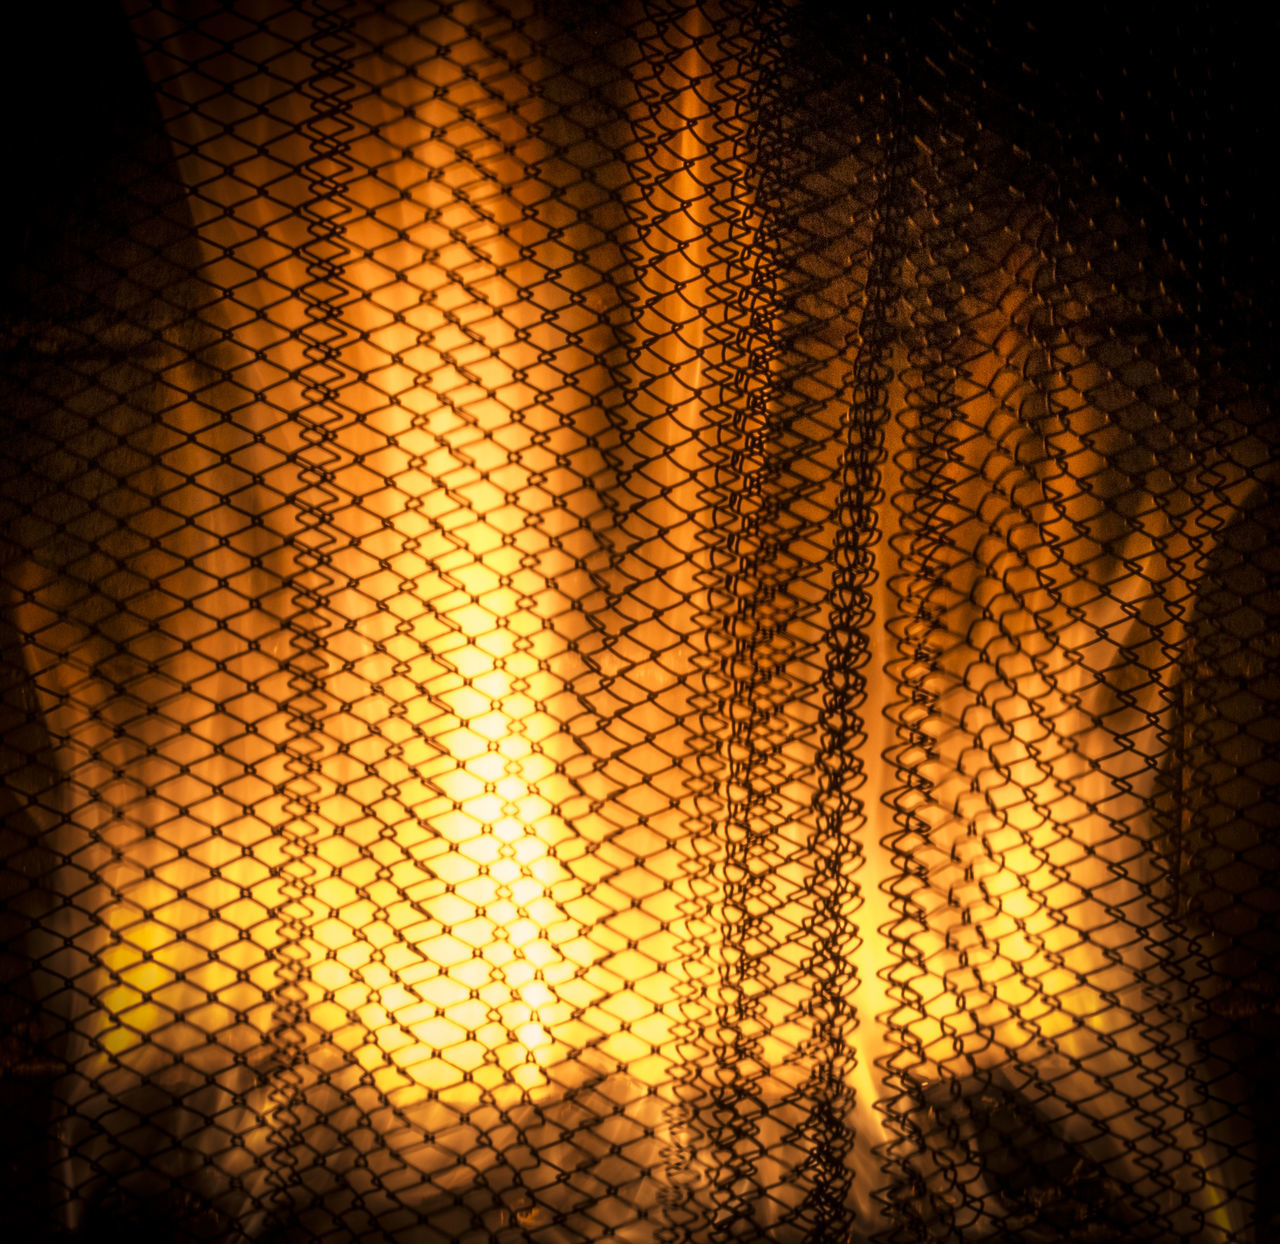 Backgrounds Black Background Close-up Flame Flames Grate Illuminated Indoors  Light Effect Long Exposure No People Orange Orange Color Pattern Screen Textured  Yellow Yellow Color Combustion Arson  Pyro